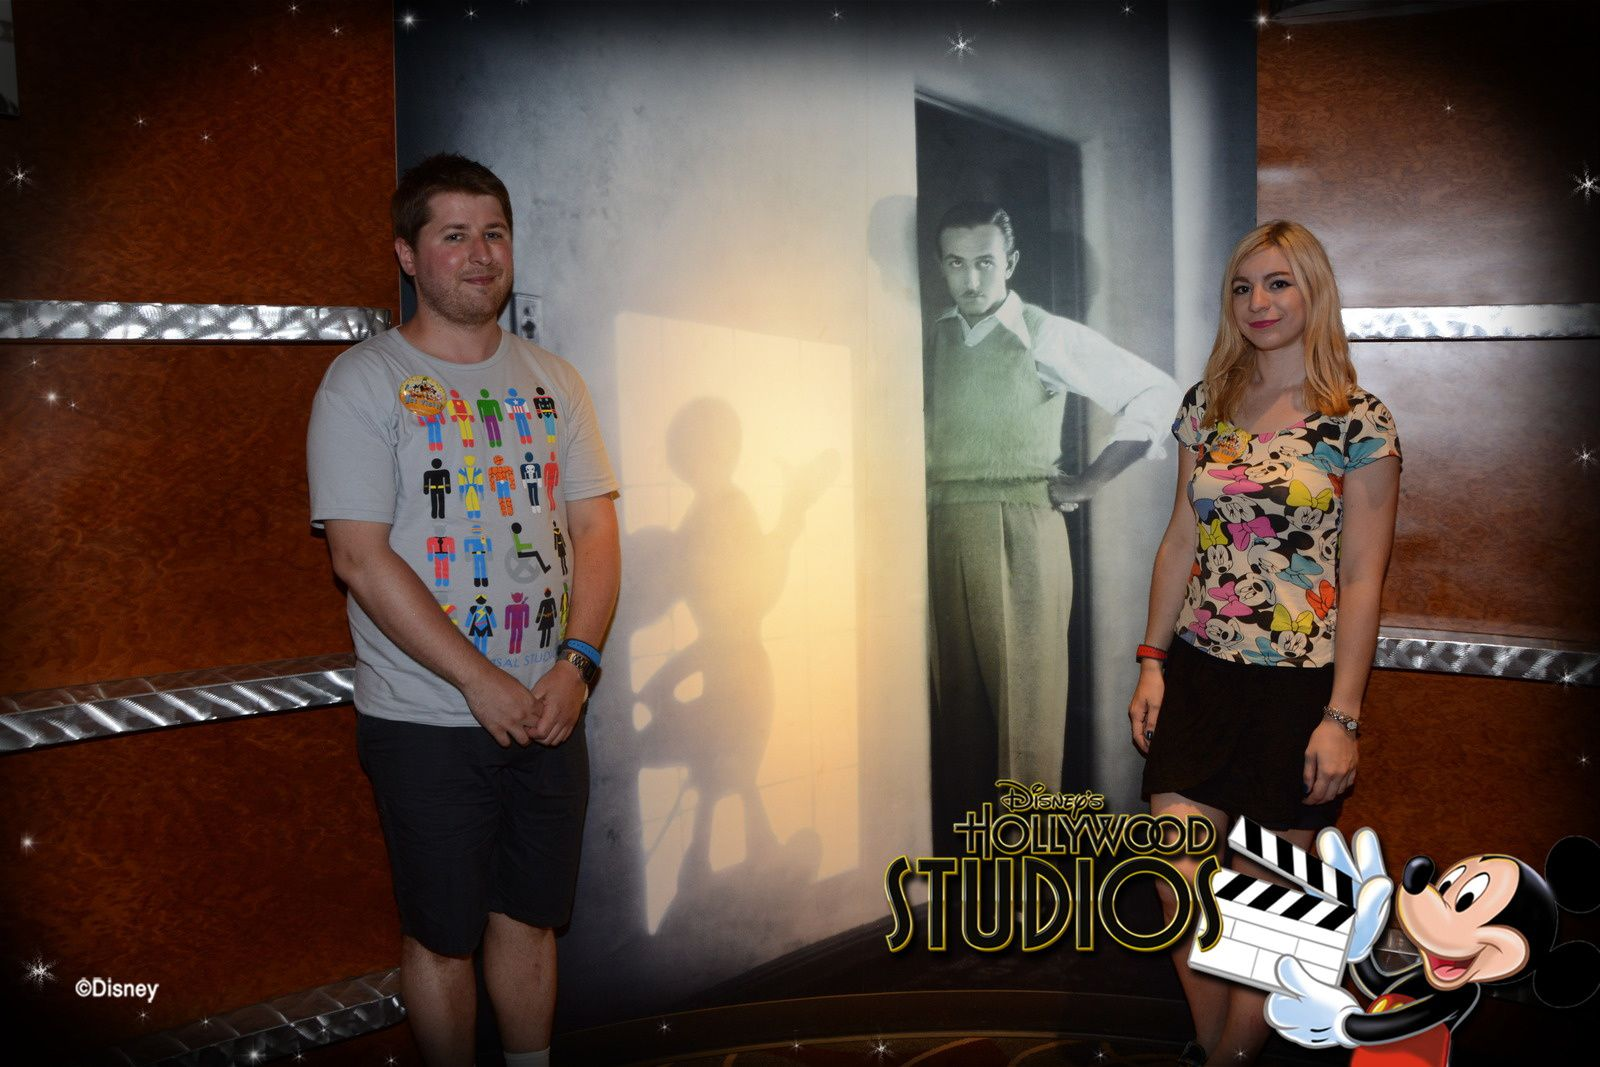 Hollywood Studios : Streets of America &amp&#x3B; Animation Courtyard